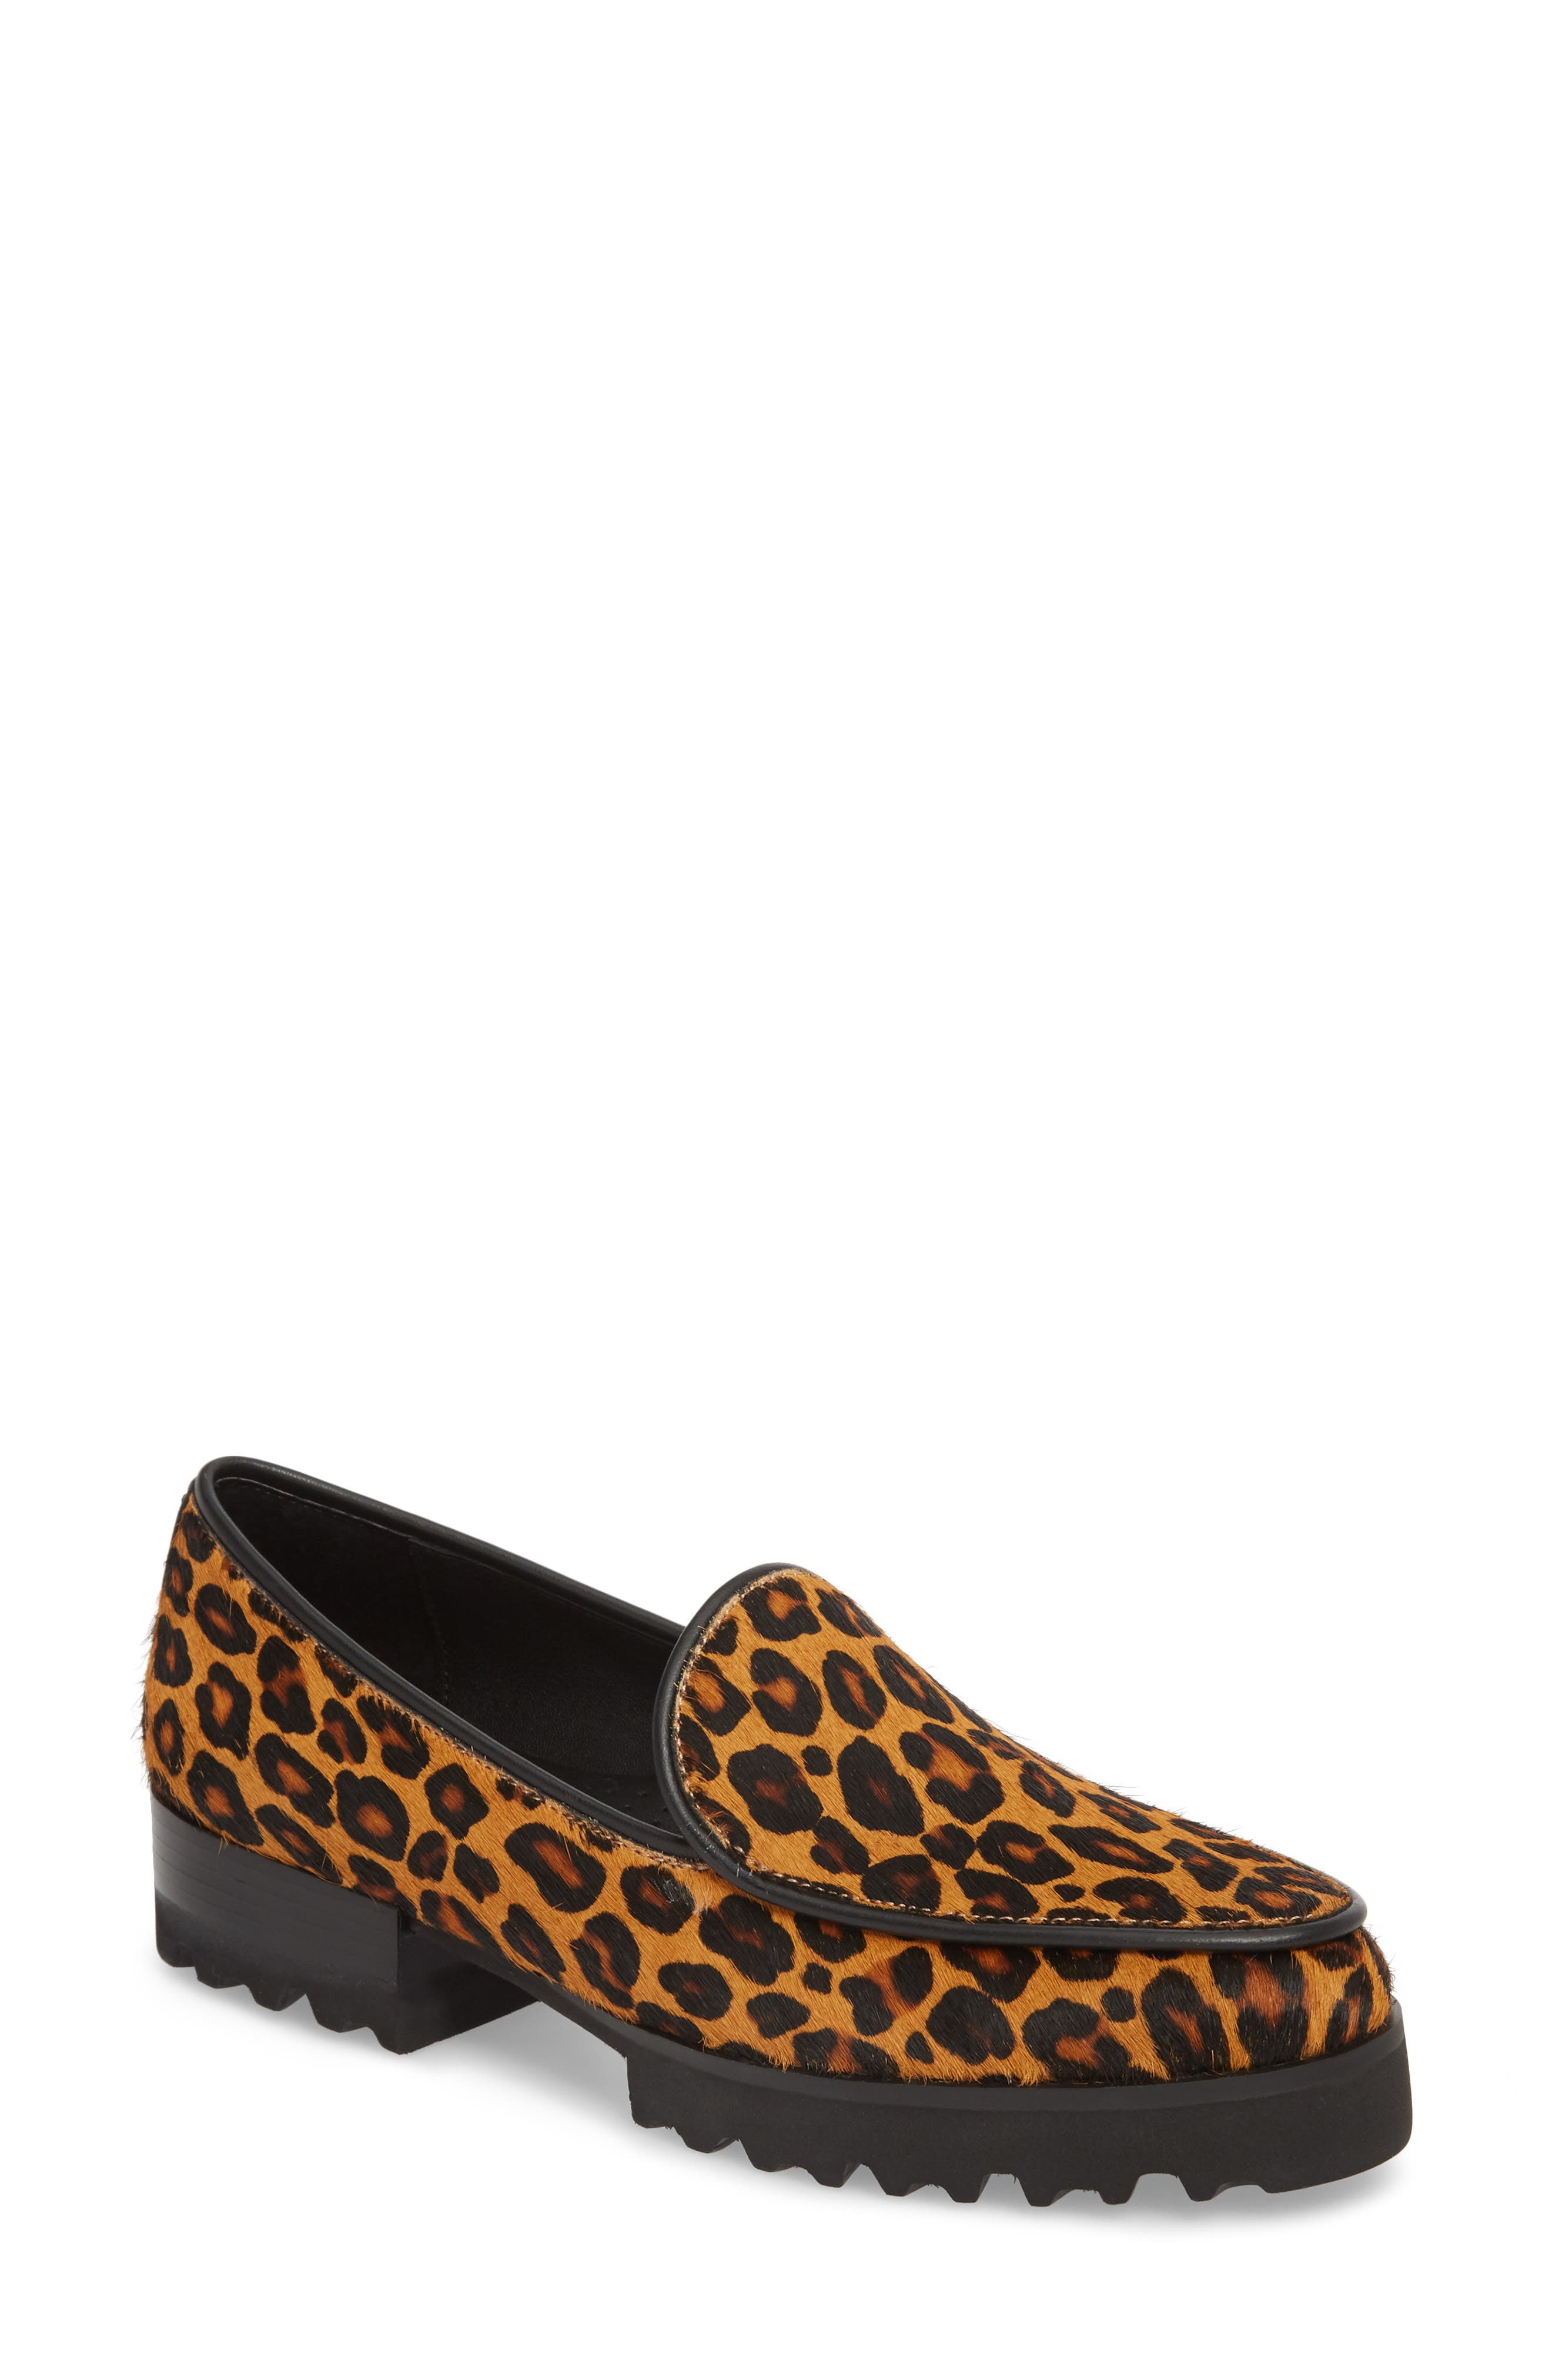 Enza Lug Sole Loafer,                         Main,                         color, LEOPARD PRINT HAIRCALF